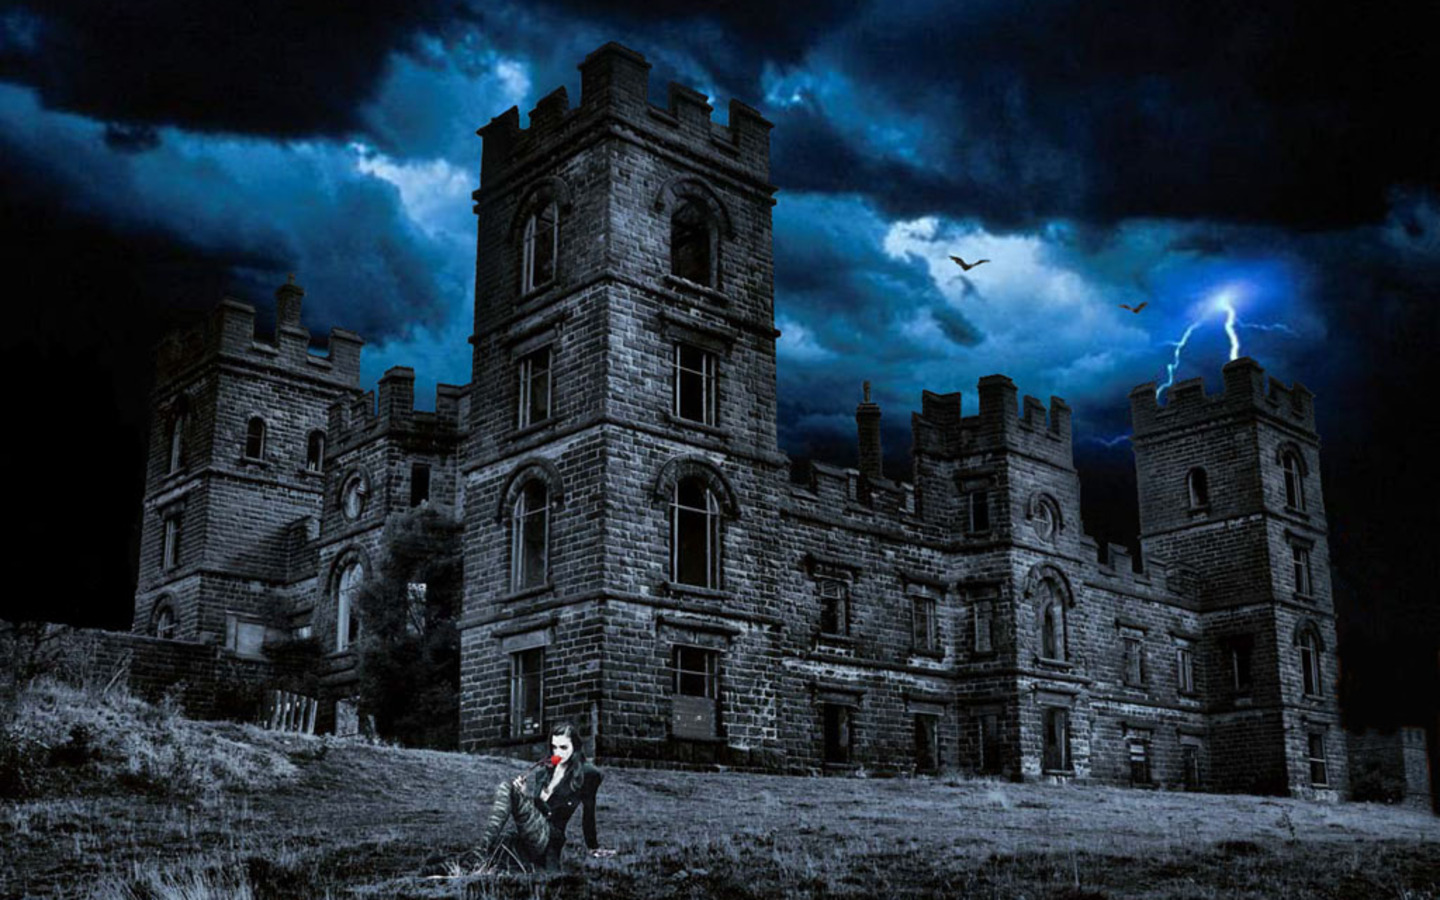 creative home wallpapers ghost house pictures horror images of houses 1440x900